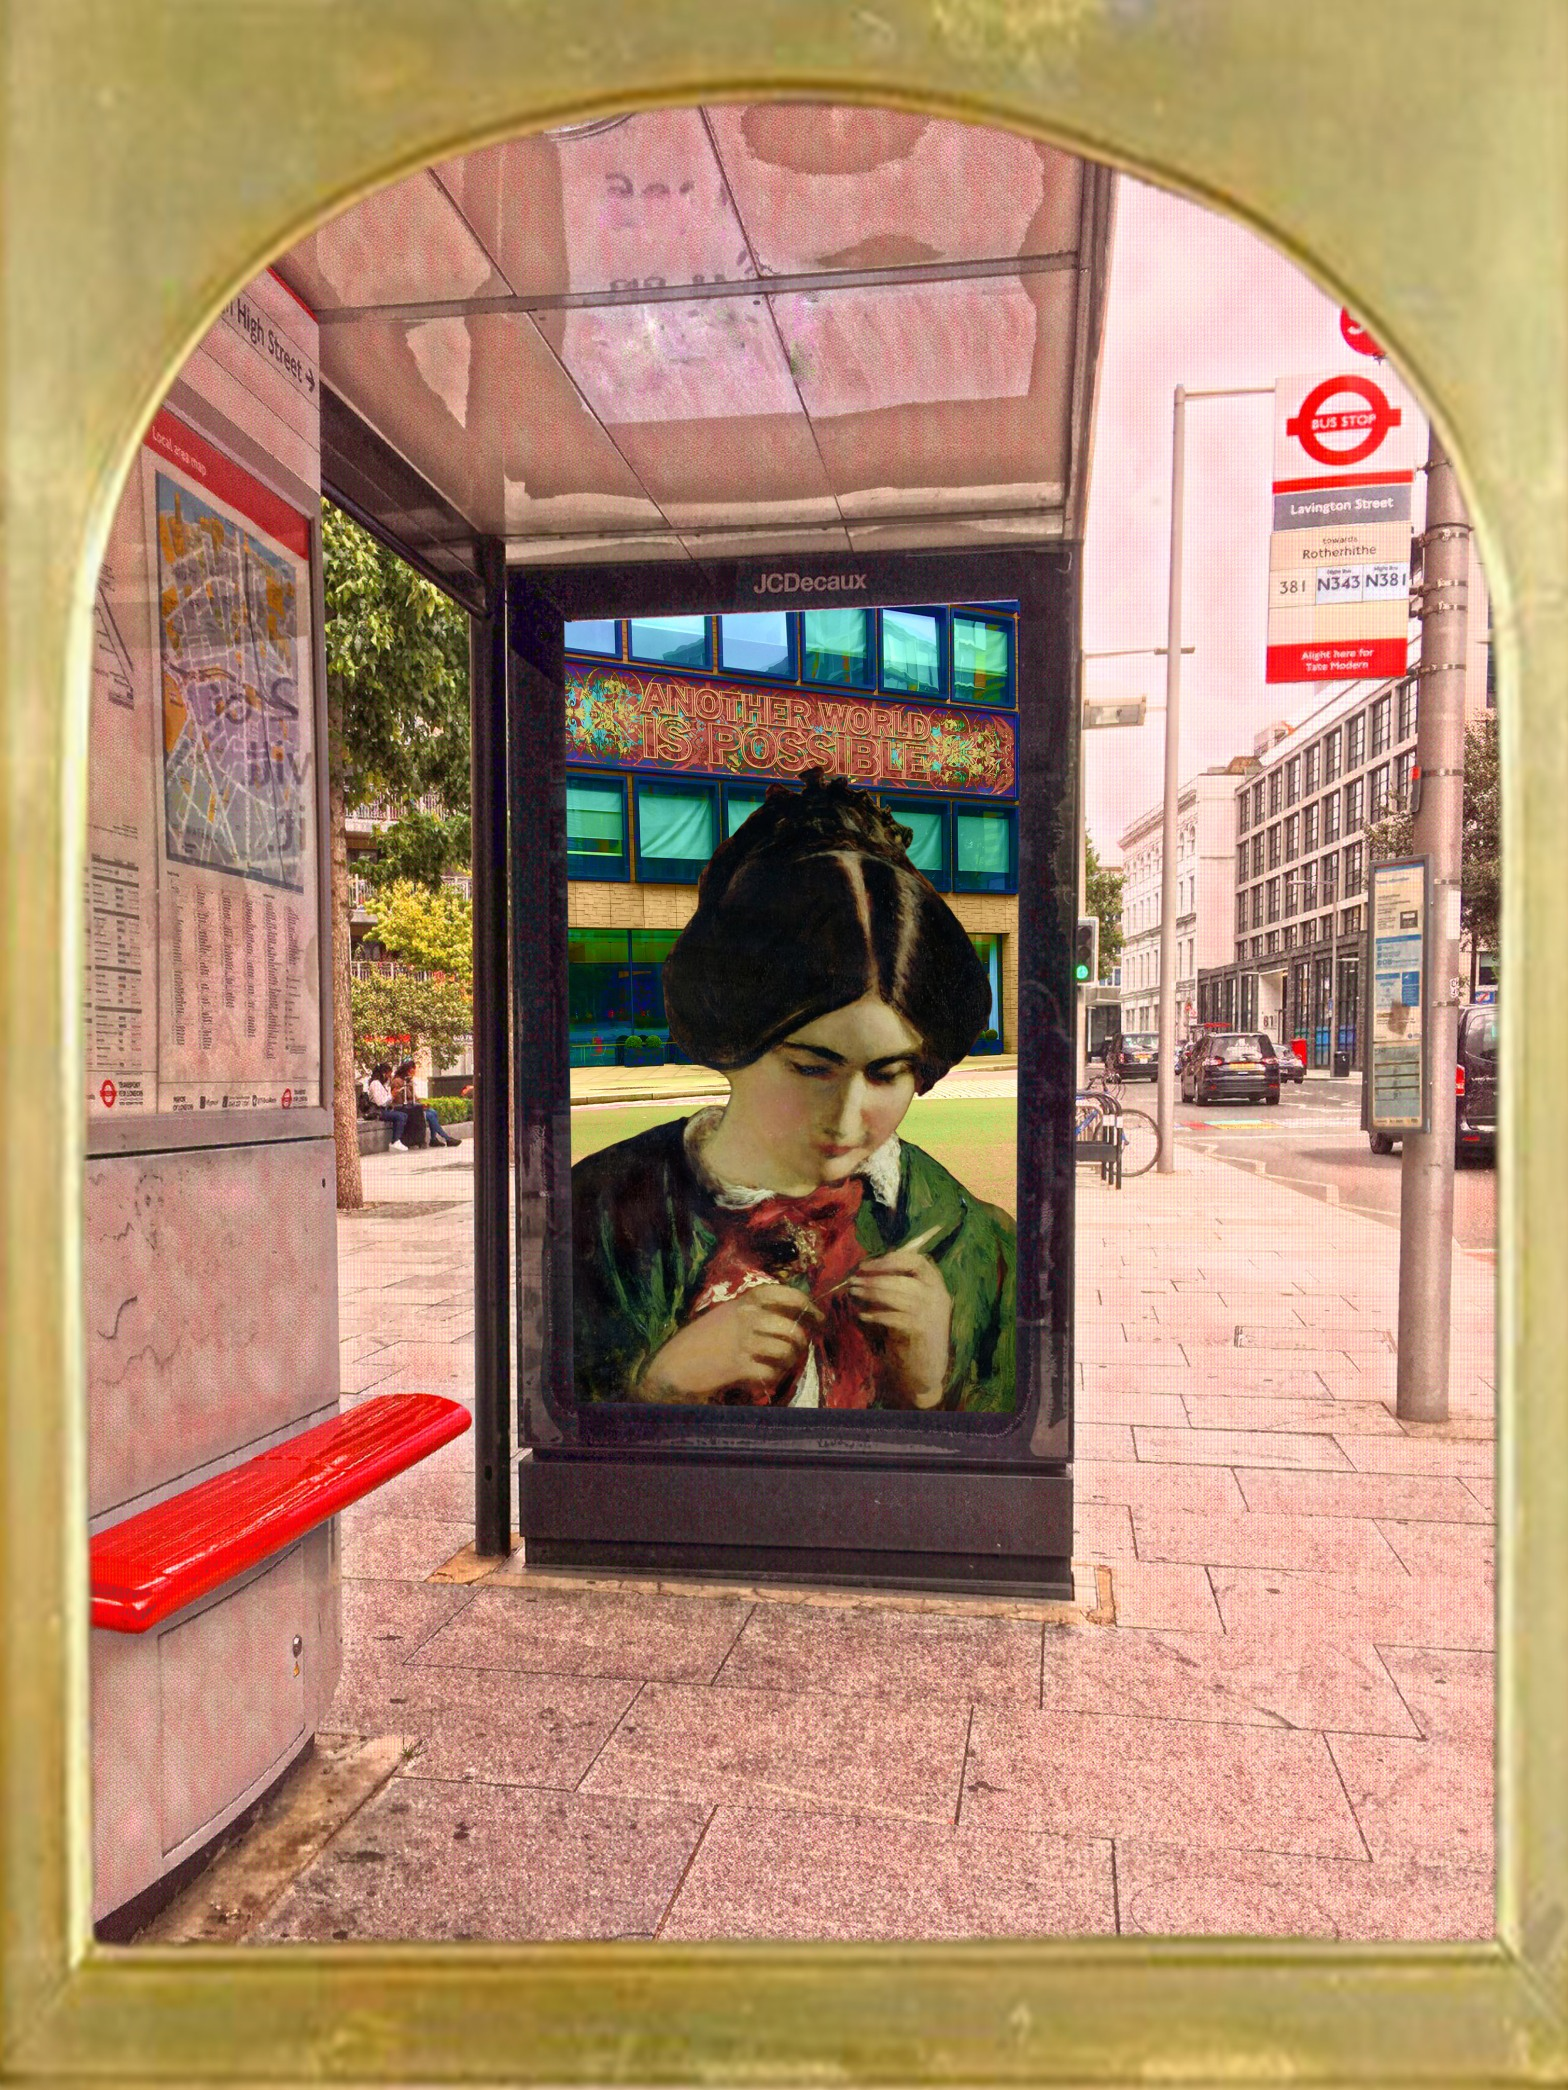 """William Etty's """"Study for The Crochet Worker"""" (1849) on a bus stop in front of a sign reading """"Another World is Possible"""" on Southwark Street near Lavington Street, Southwark, London"""